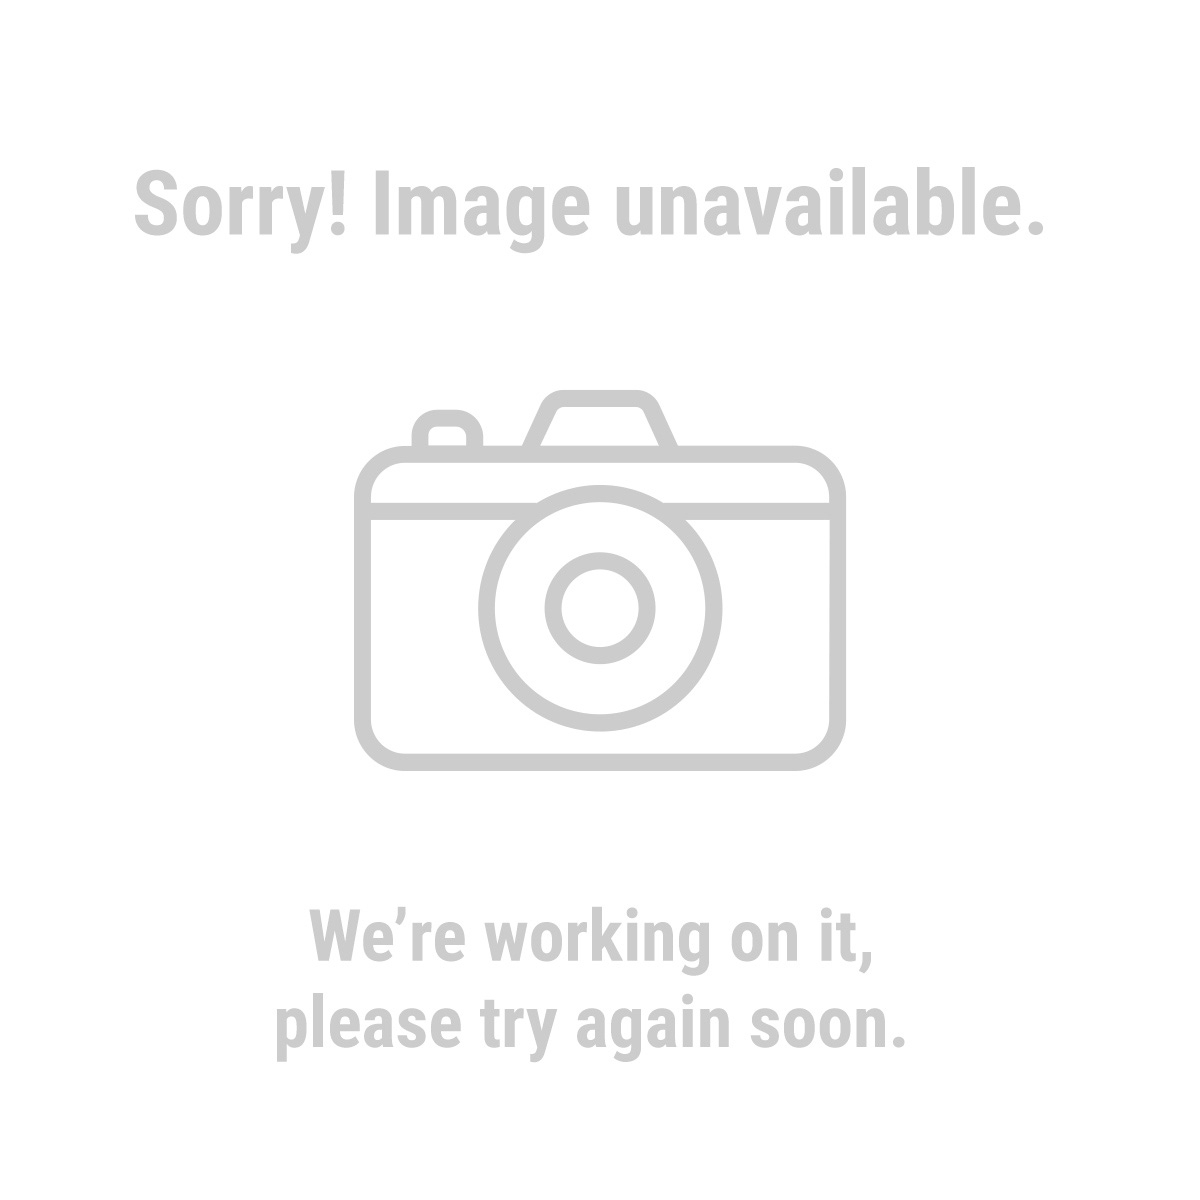 WALKER'S ULTRA EAR 66577 Ultra Ear Sound Amplifier